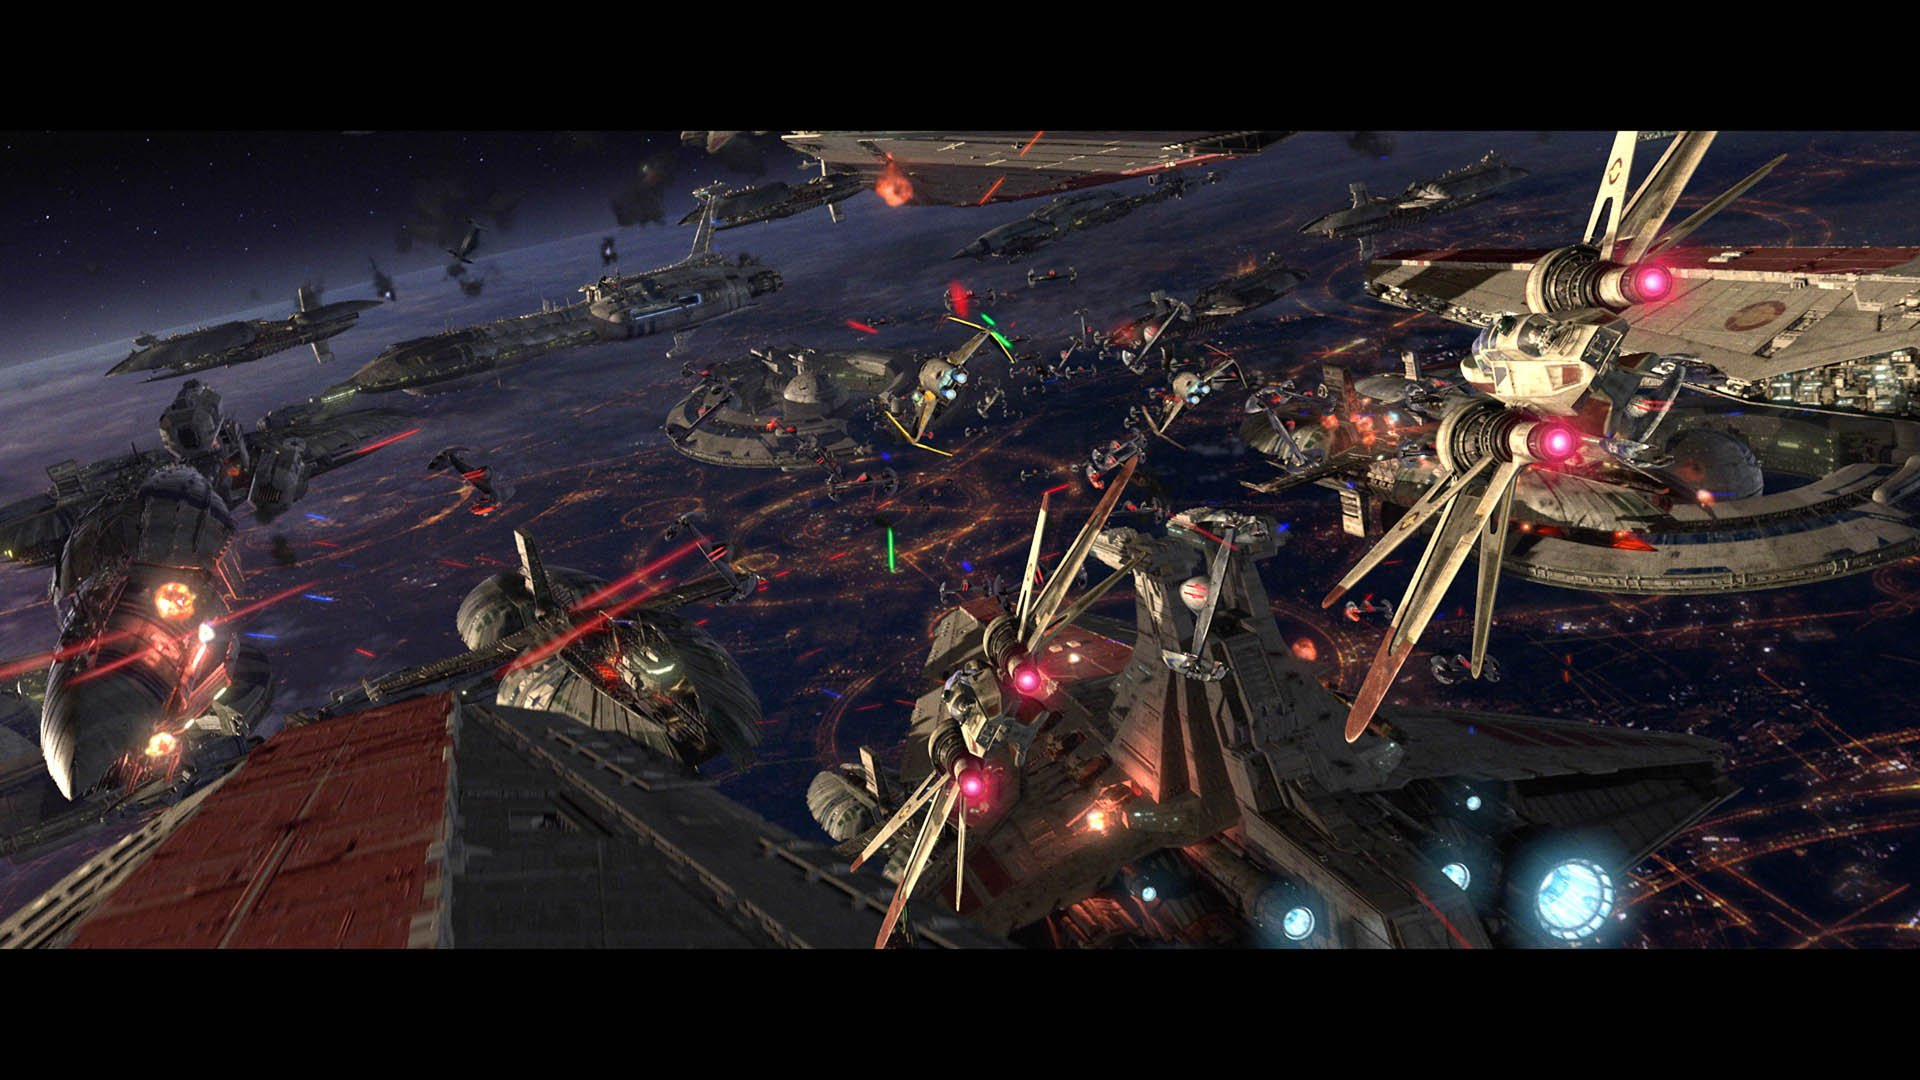 Download Star Wars Sith Battle wallpaper in Movies wallpapers with 1920x1080